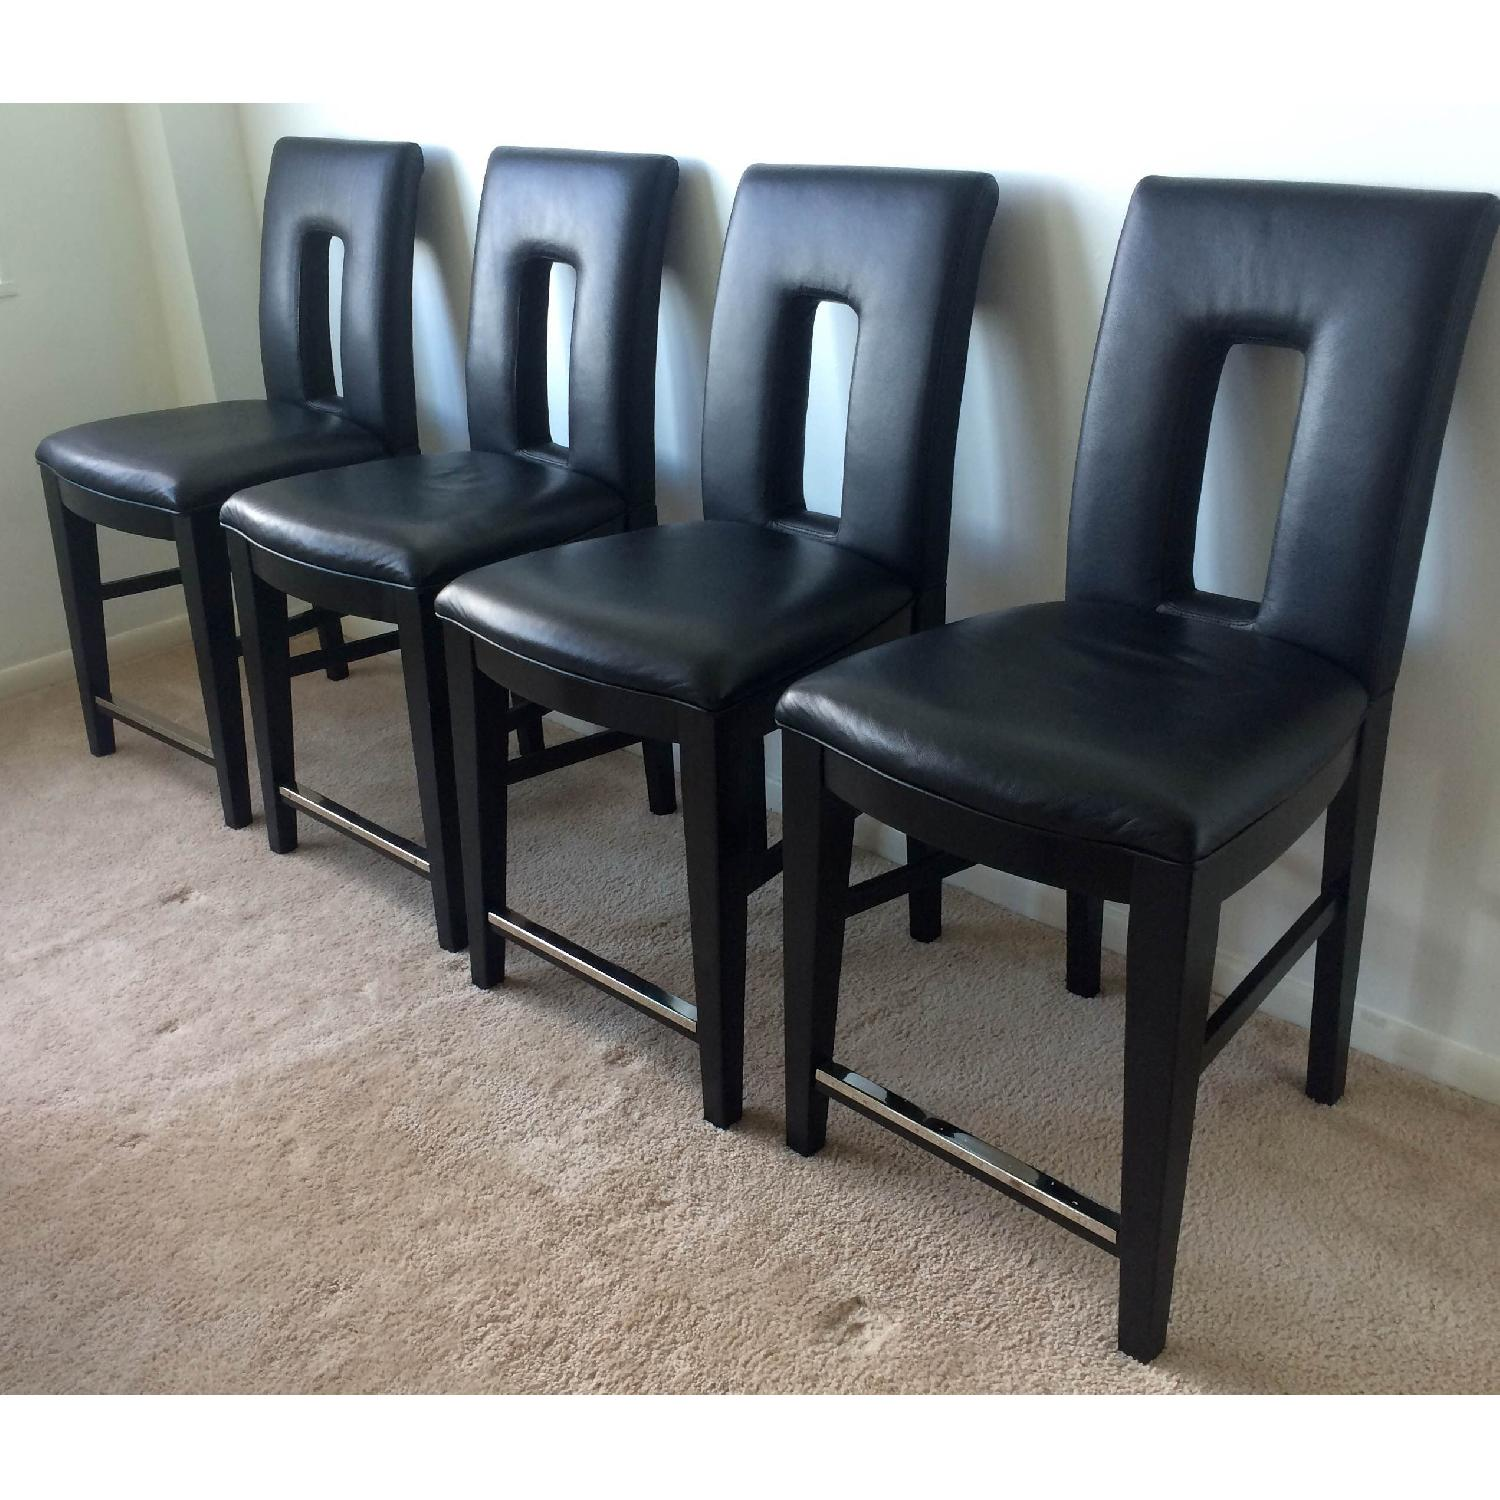 Broyhill Italian Leather Counter-Height Chairs - image-5